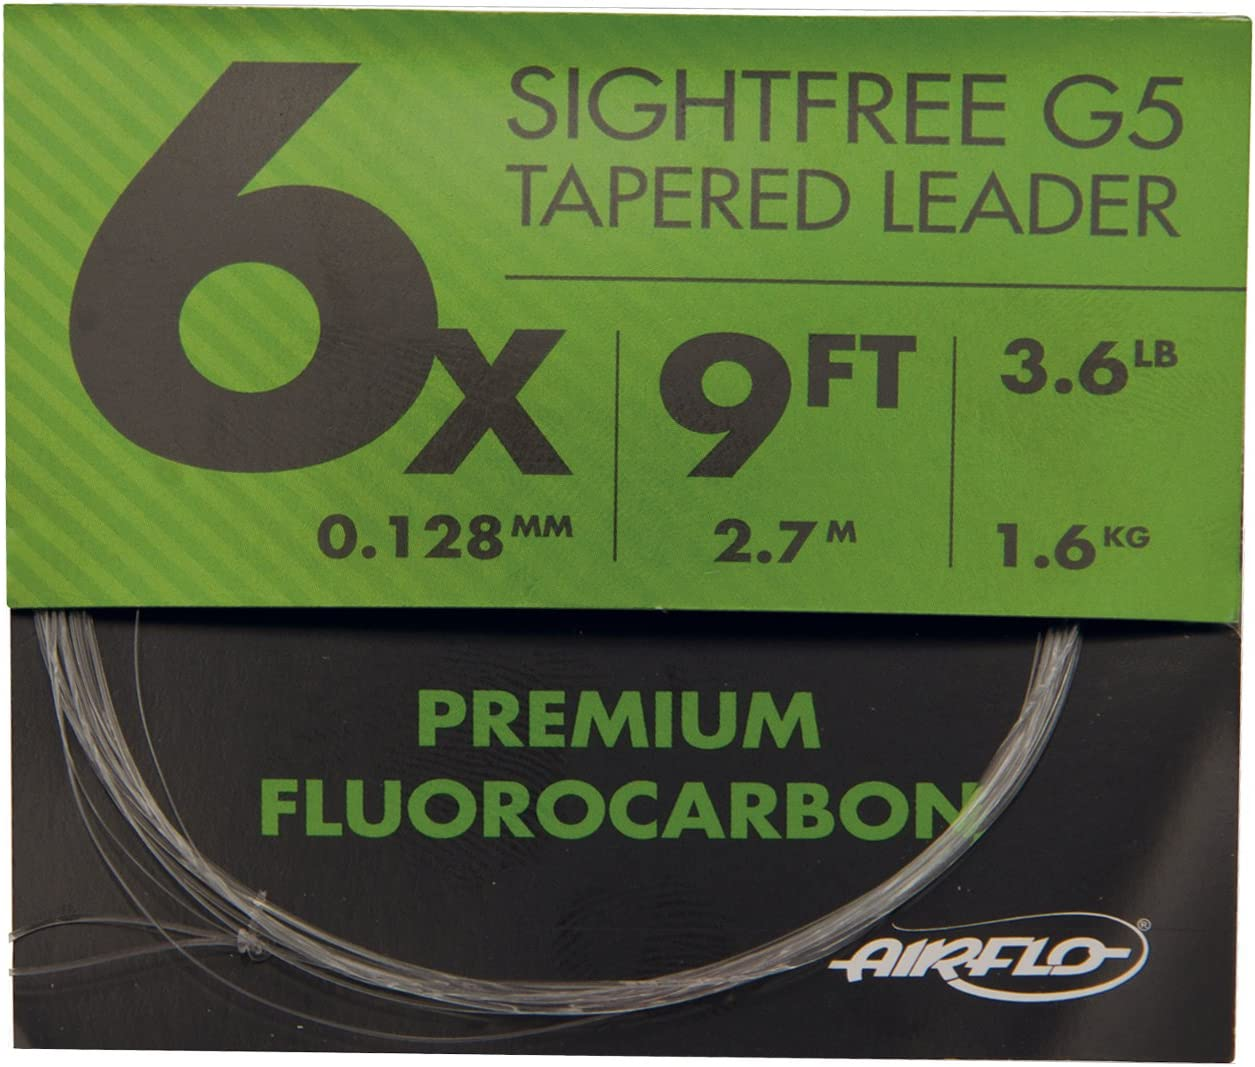 Airflo NEW G5 Fluorocarbon Fishing Leaders Various Options